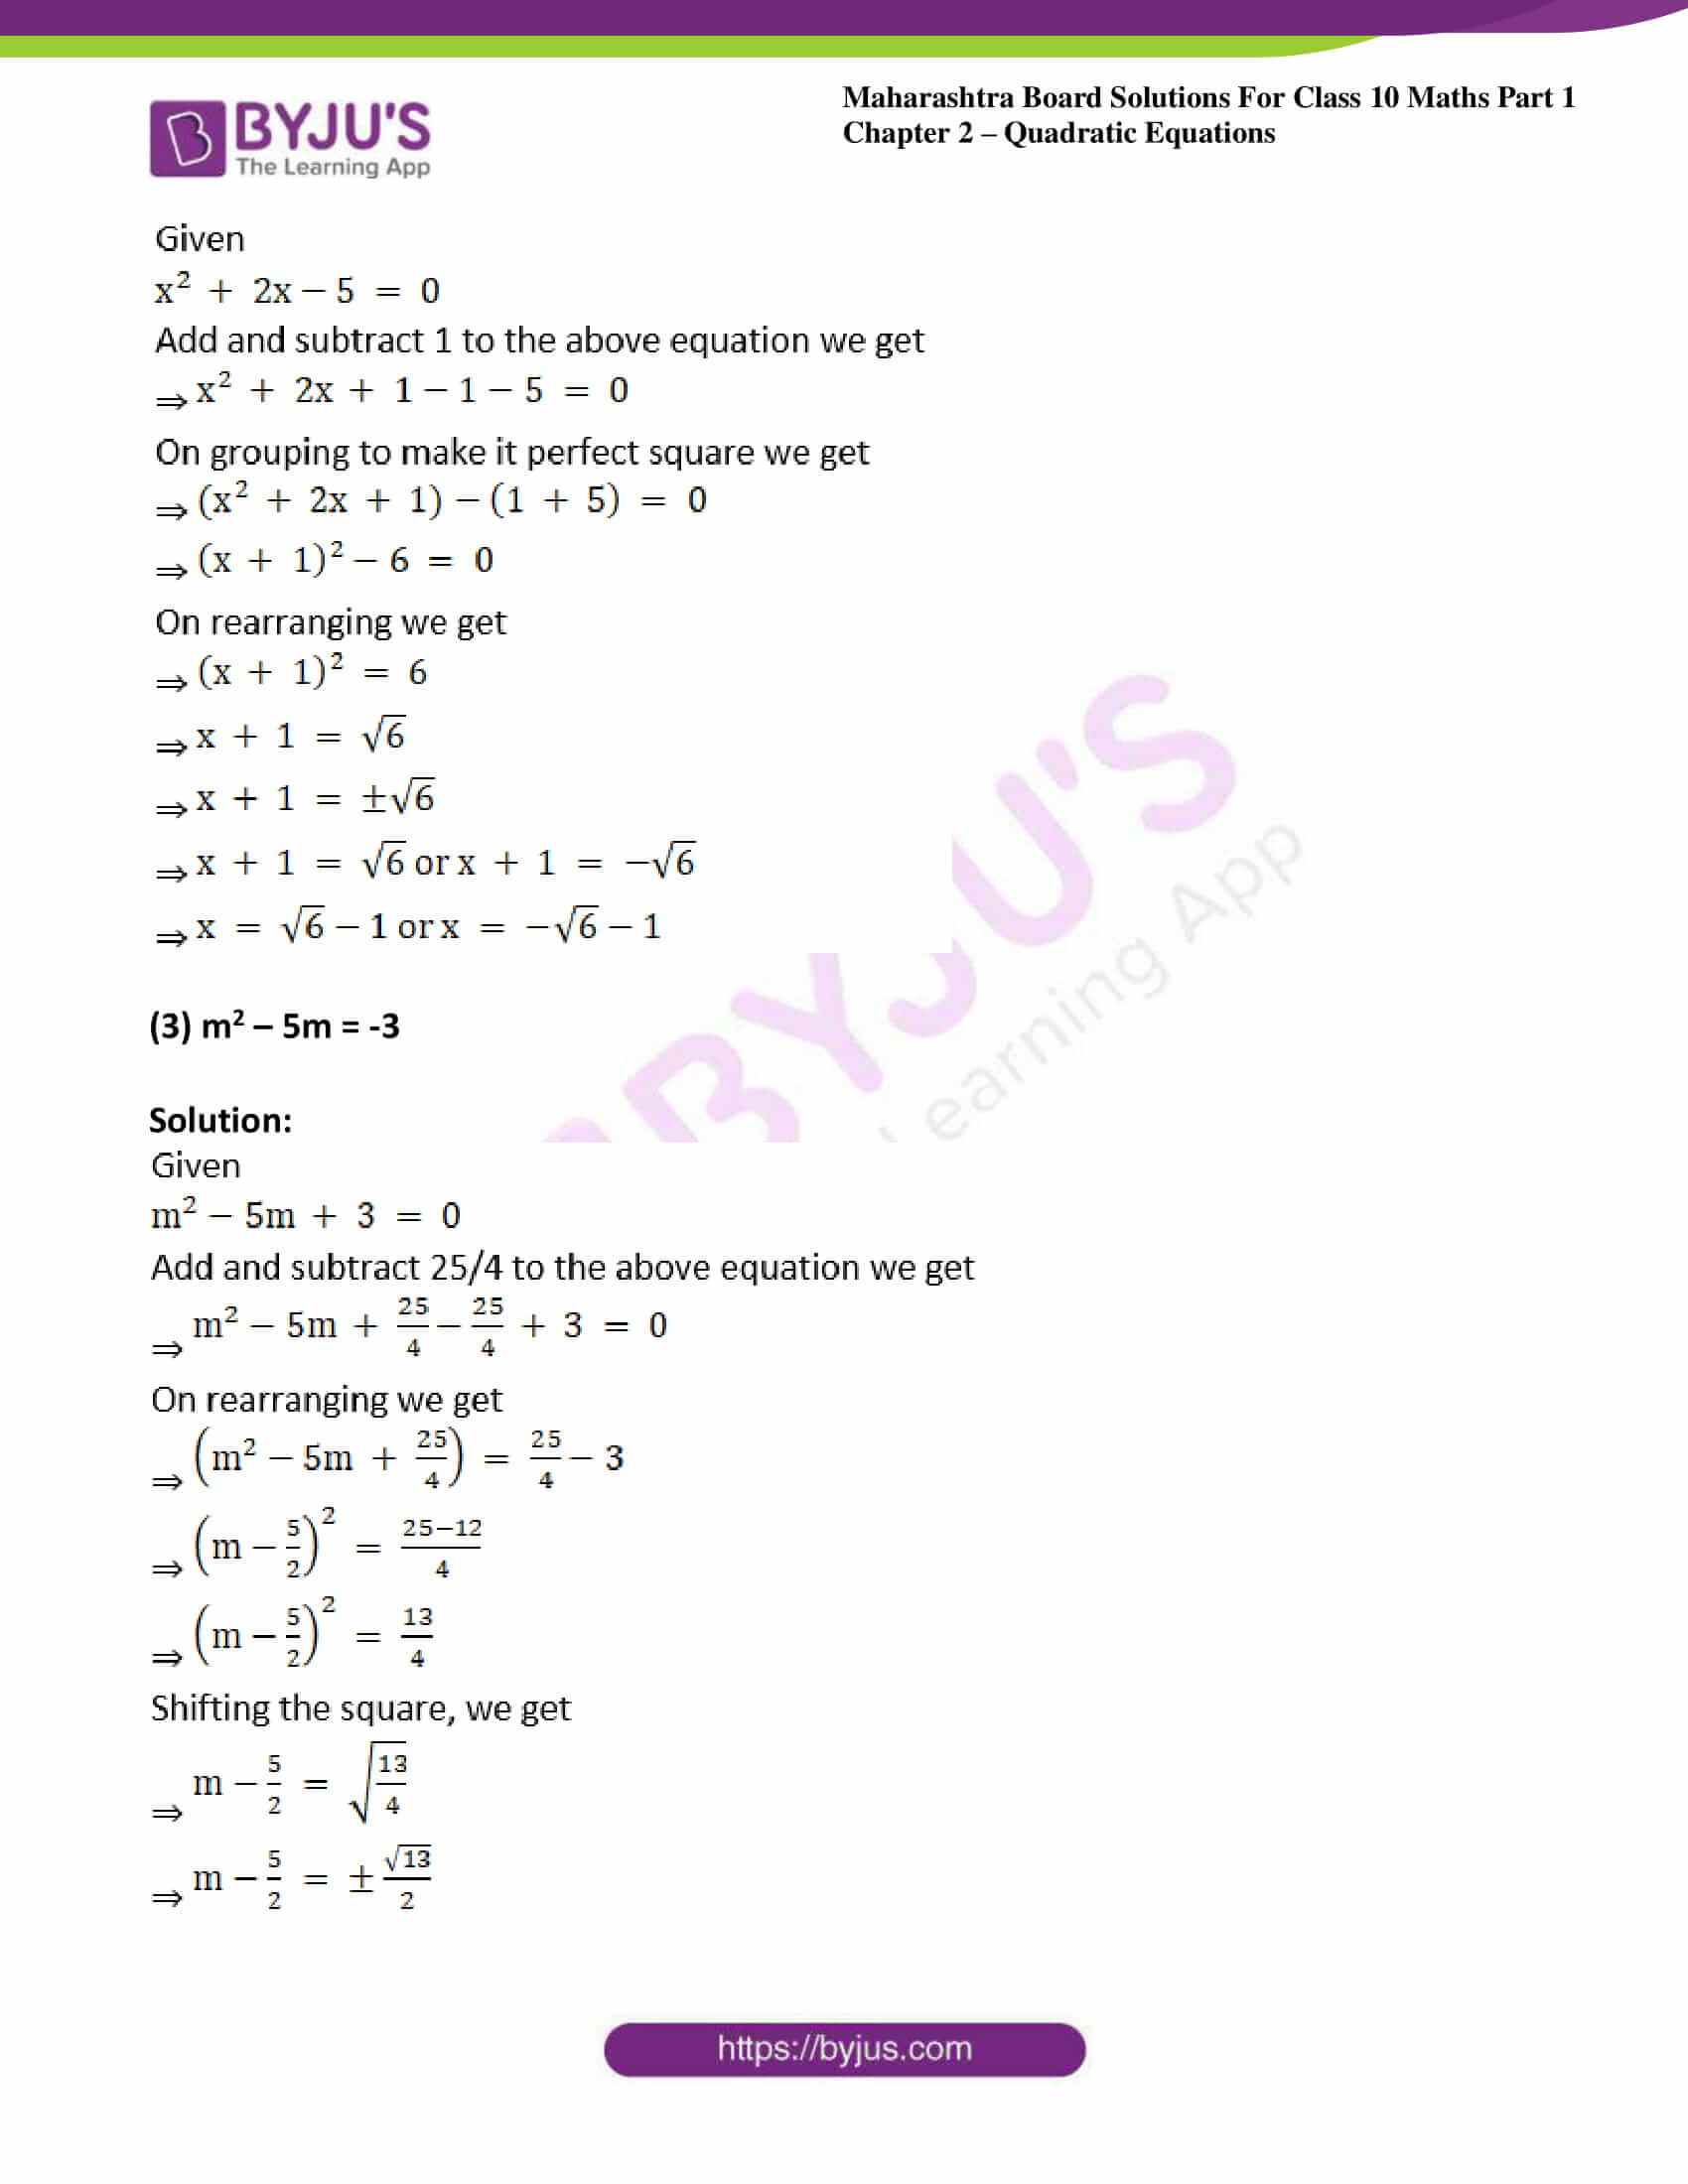 msbshse solutions class 10 maths part 1 chapter 2 12